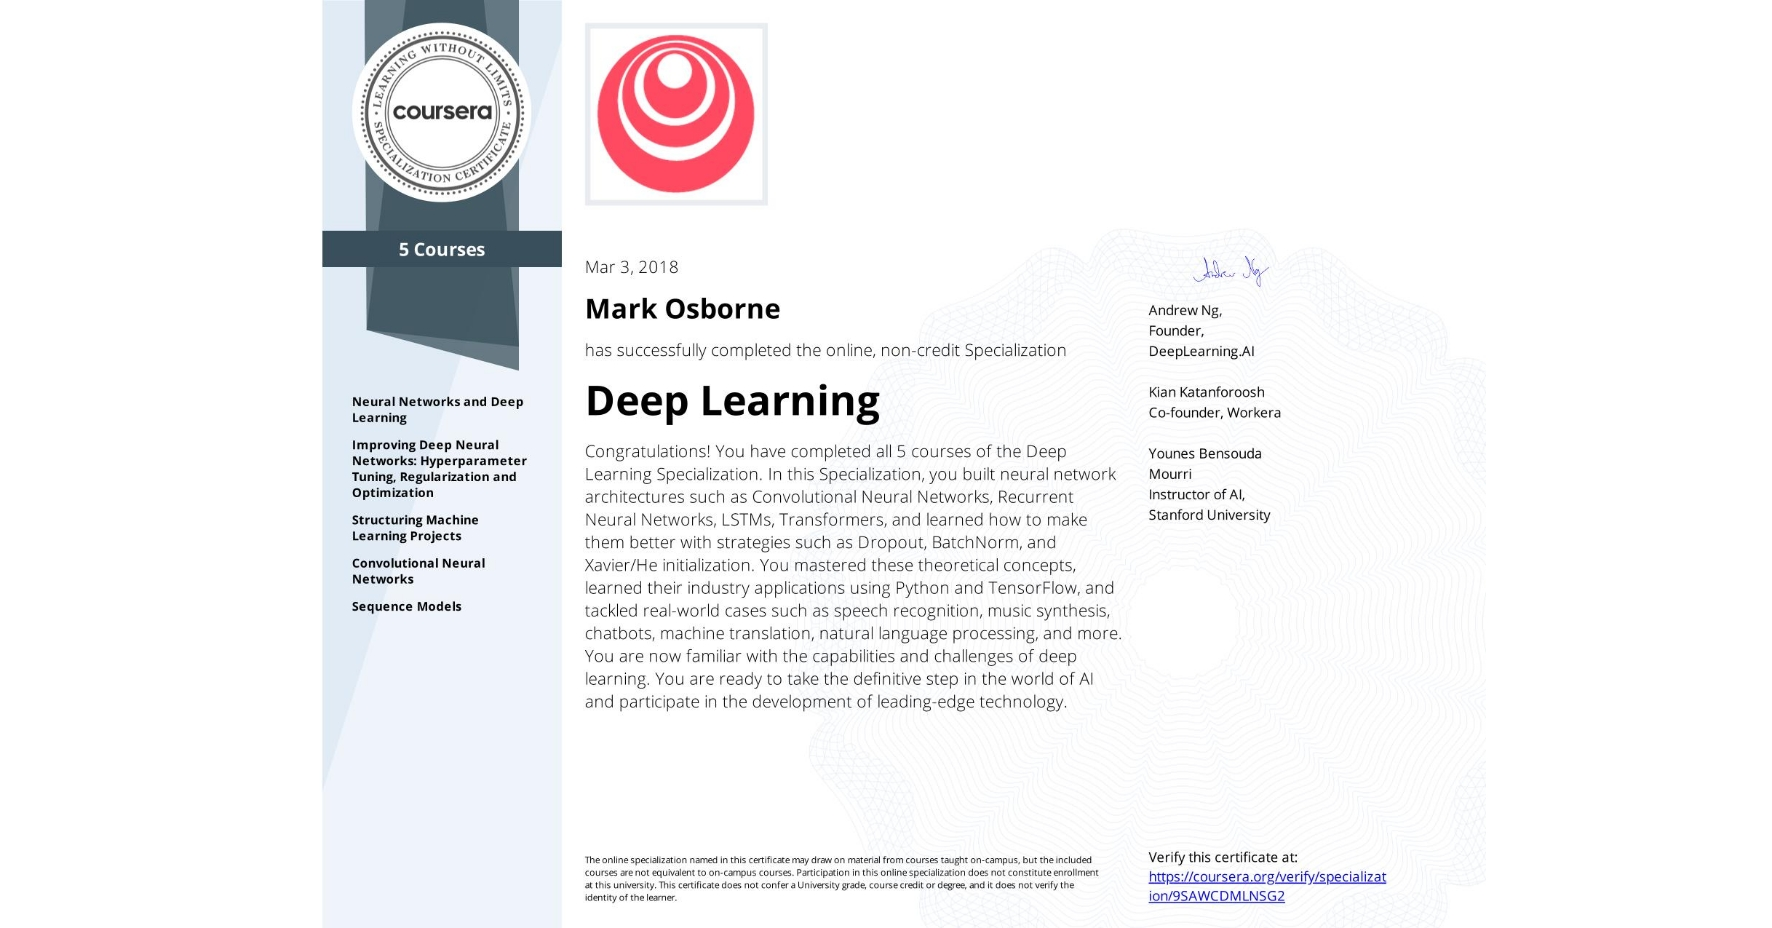 View certificate for Mark Osborne, Deep Learning, offered through Coursera. The Deep Learning Specialization is designed to prepare learners to participate in the development of cutting-edge AI technology, and to understand the capability, the challenges, and the consequences of the rise of deep learning. Through five interconnected courses, learners develop a profound knowledge of the hottest AI algorithms, mastering deep learning from its foundations (neural networks) to its industry applications (Computer Vision, Natural Language Processing, Speech Recognition, etc.).